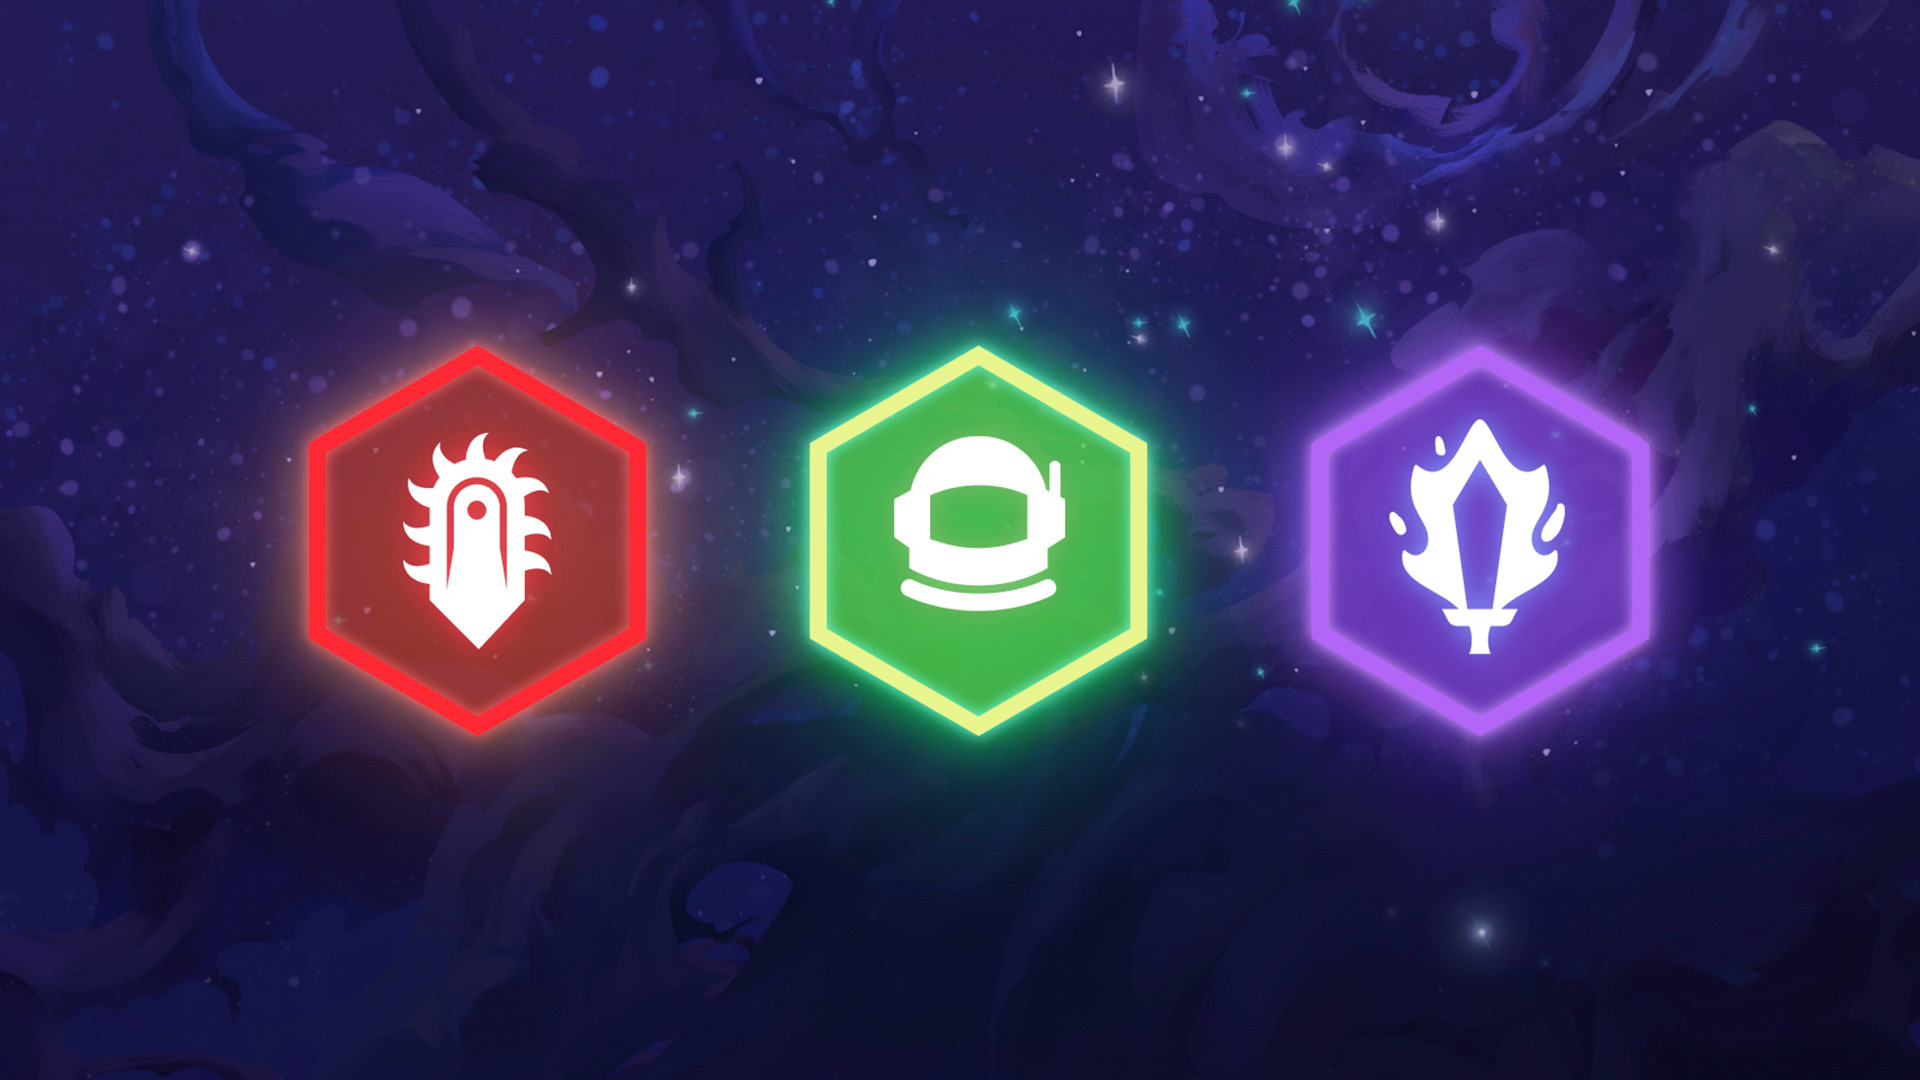 Teamfight Tactics mid-set update will hit the PBE later today